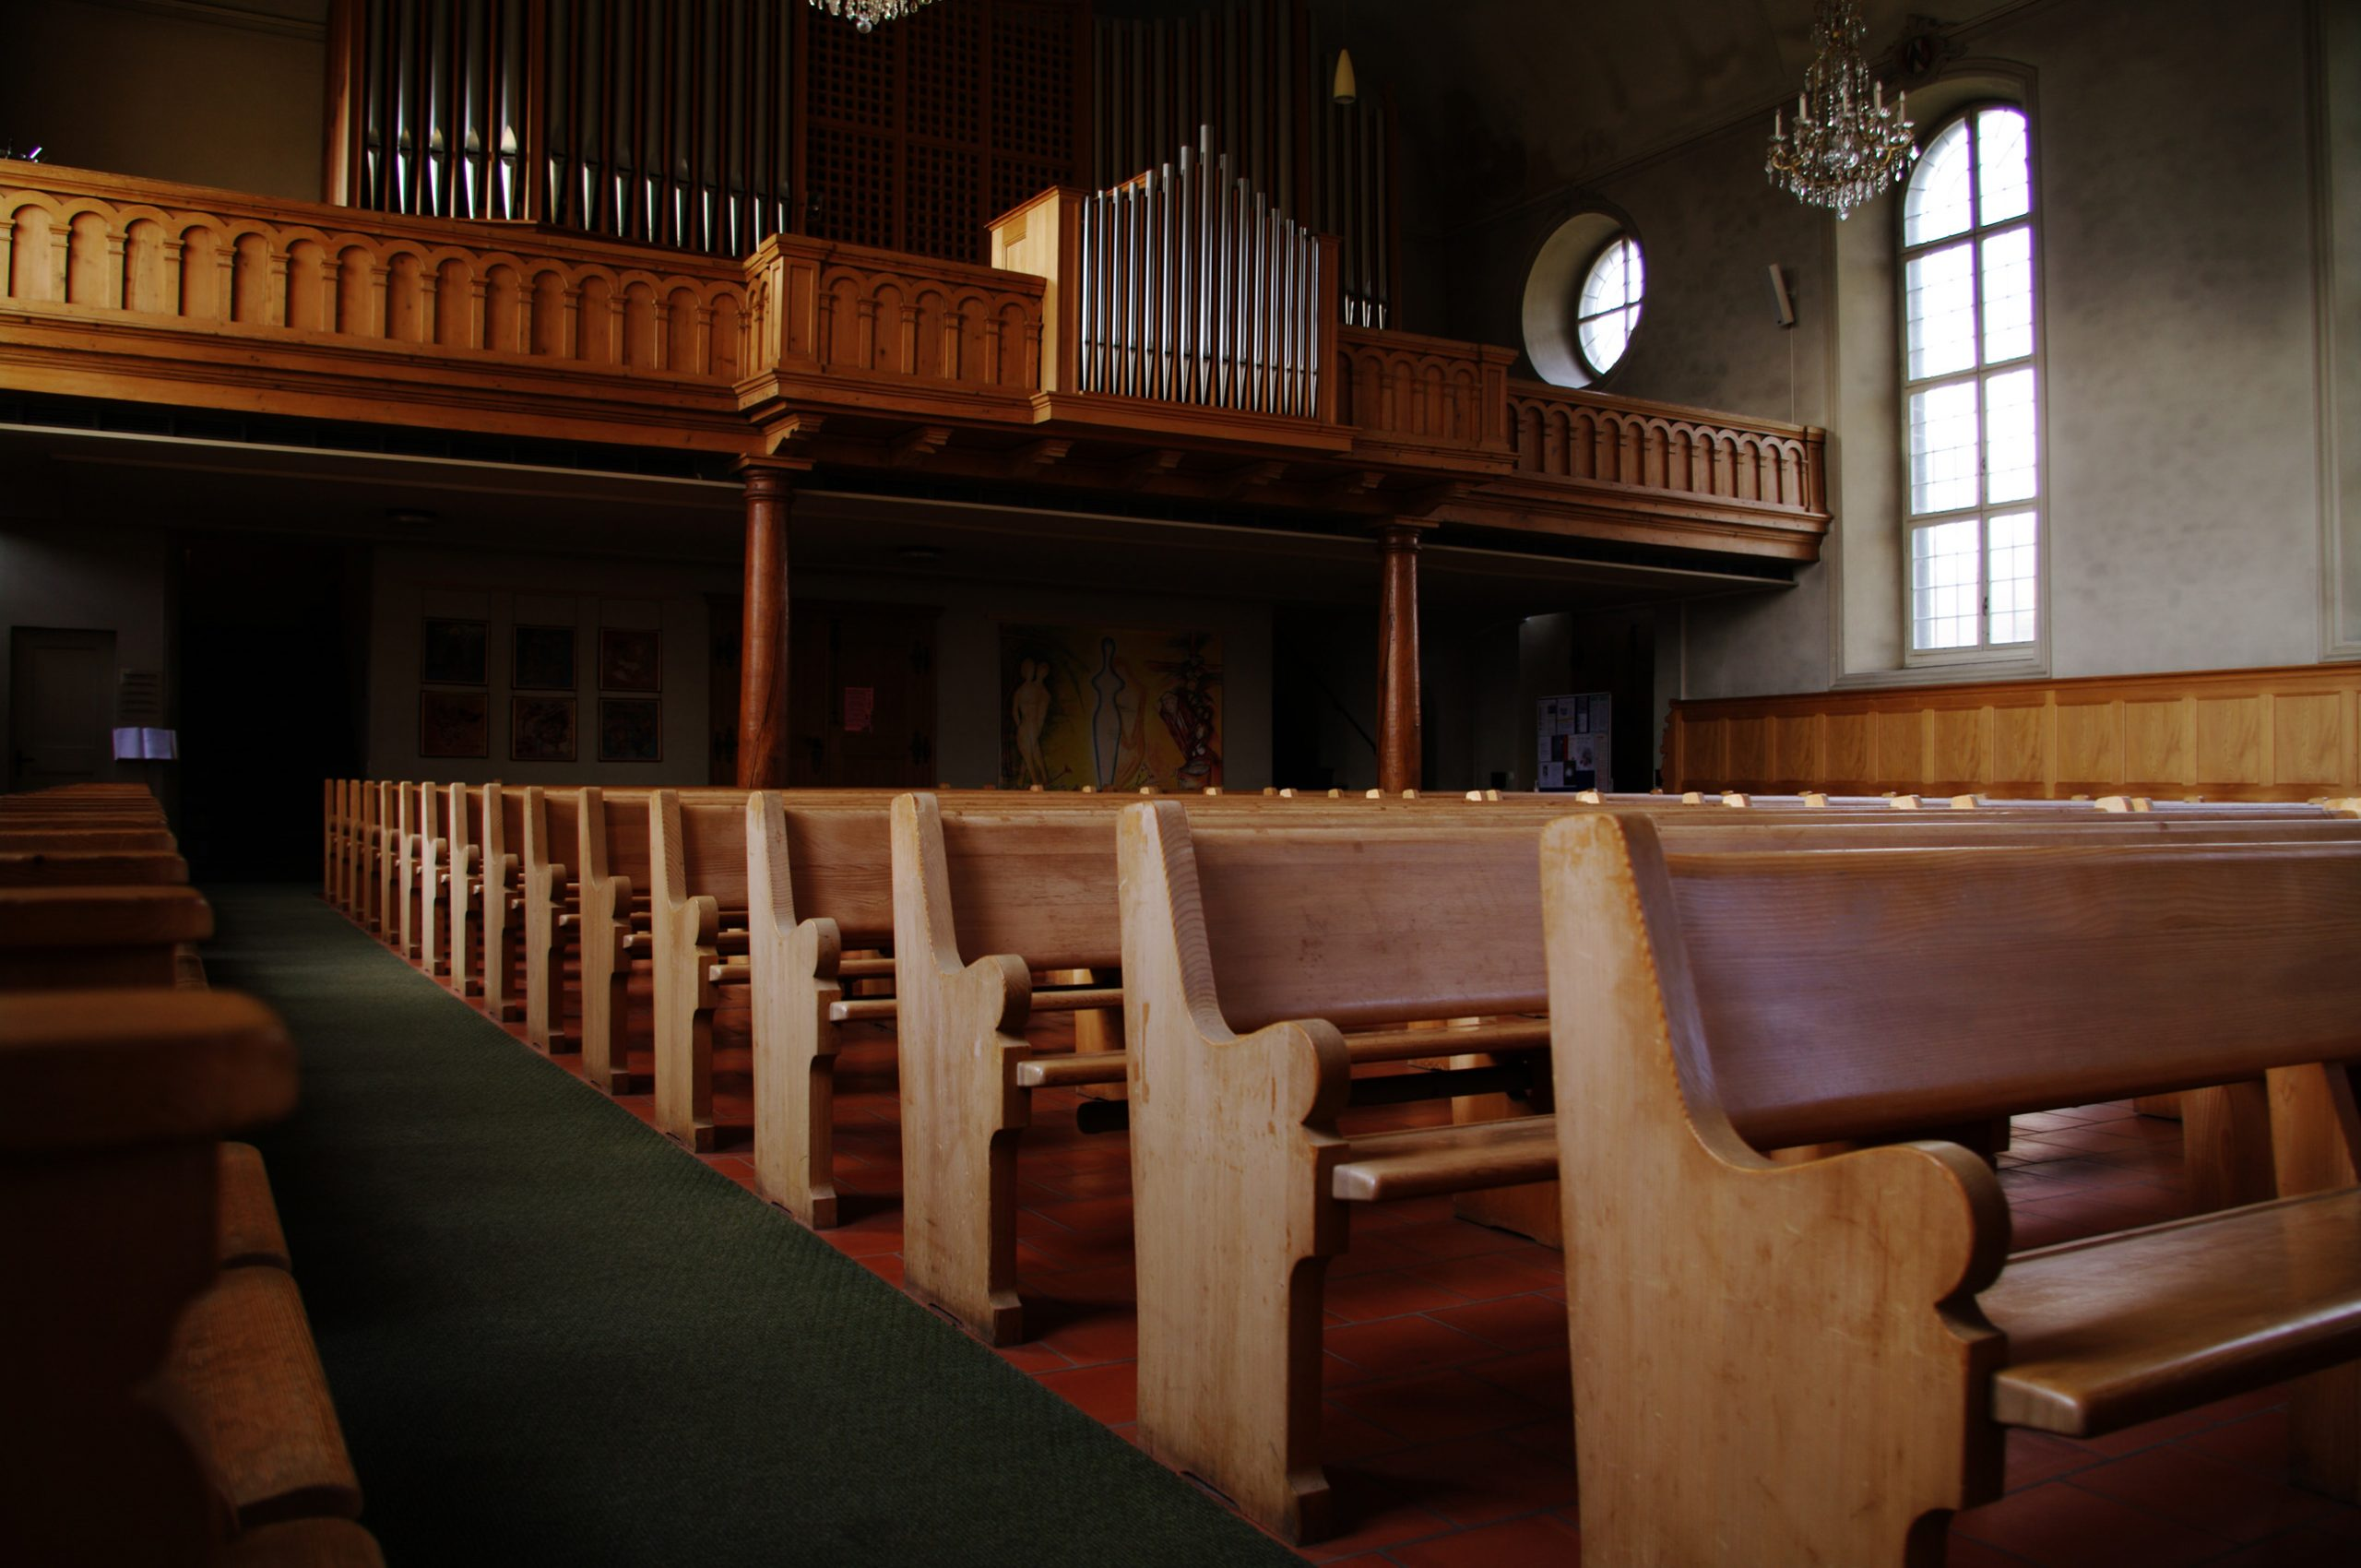 5 Steps To Find A Church And Make It Your Home